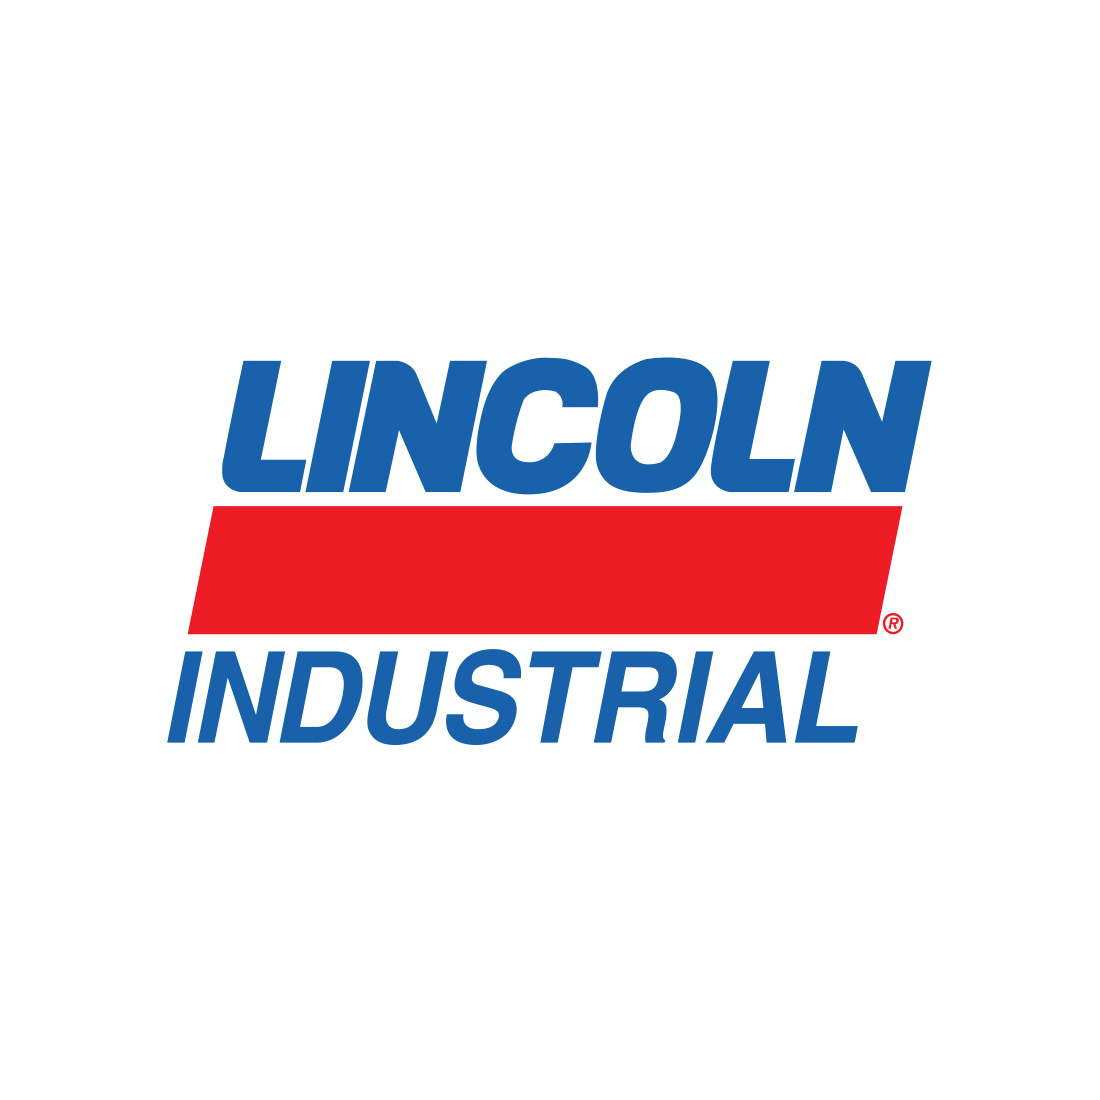 Lincoln Industrial Corporation